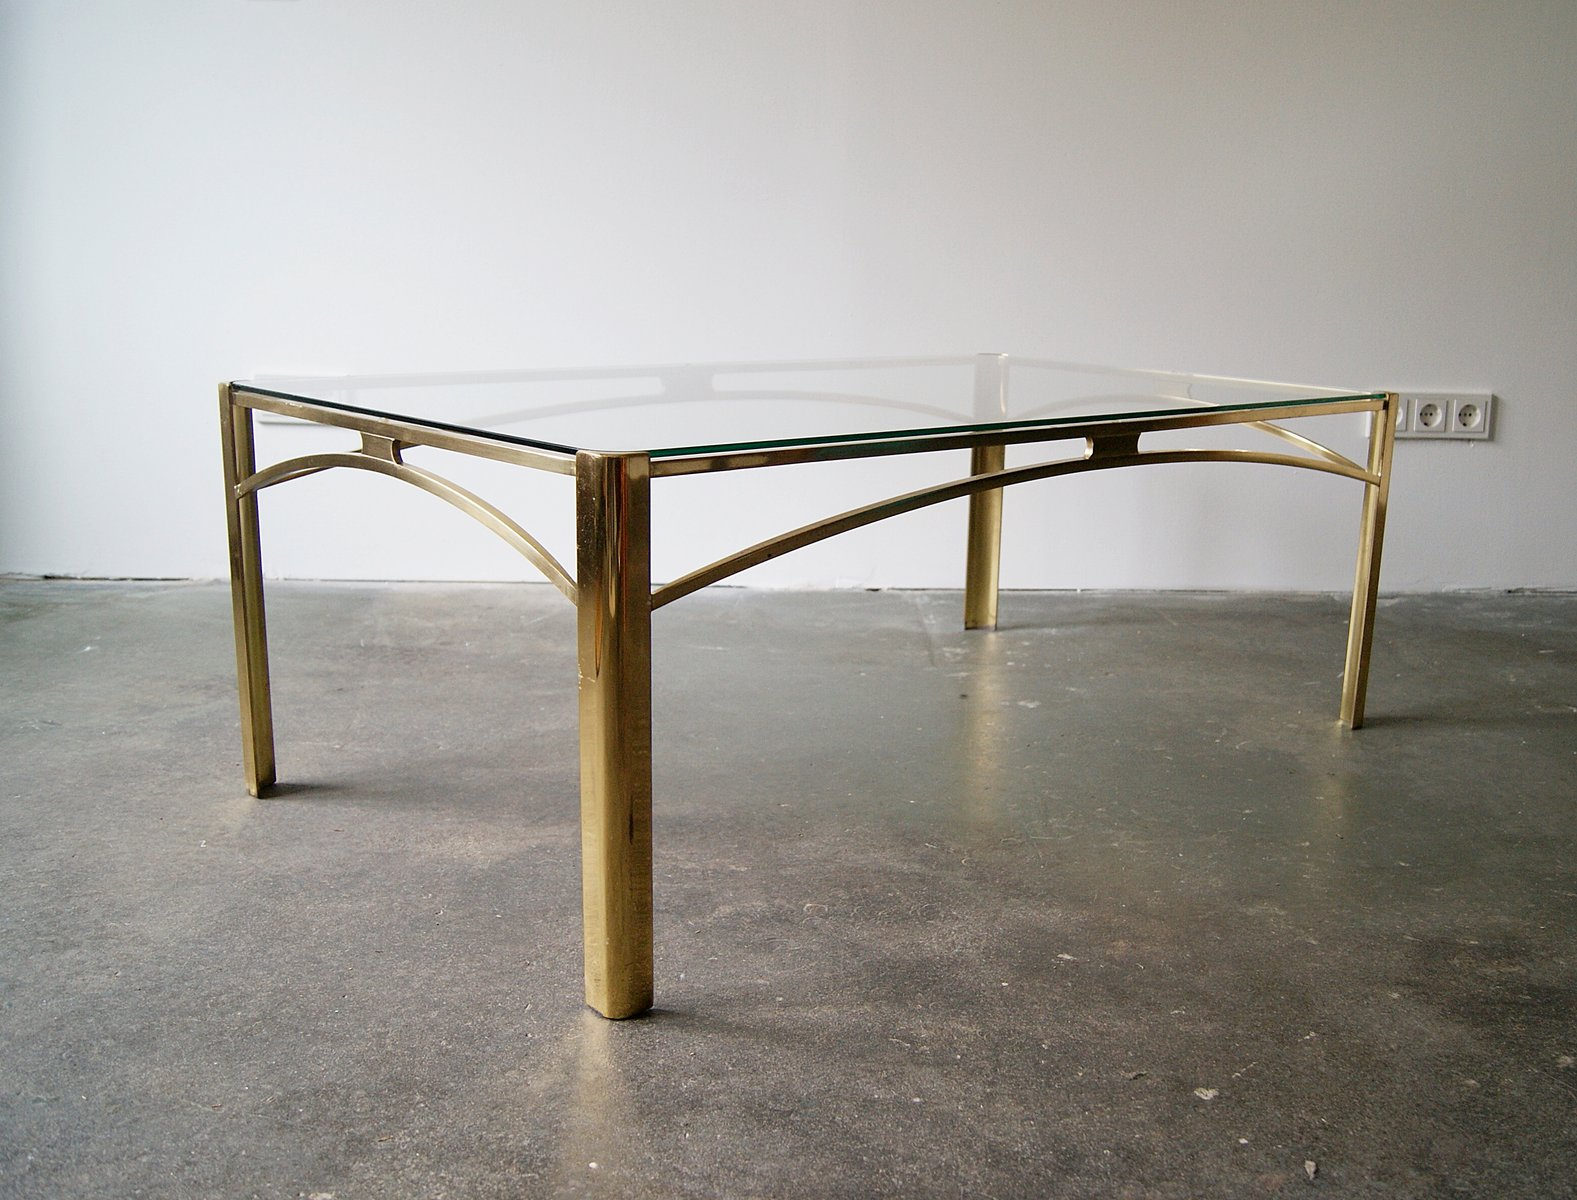 Mid century modern coffee table from broncz for sale at pamono for Modern coffee table sale